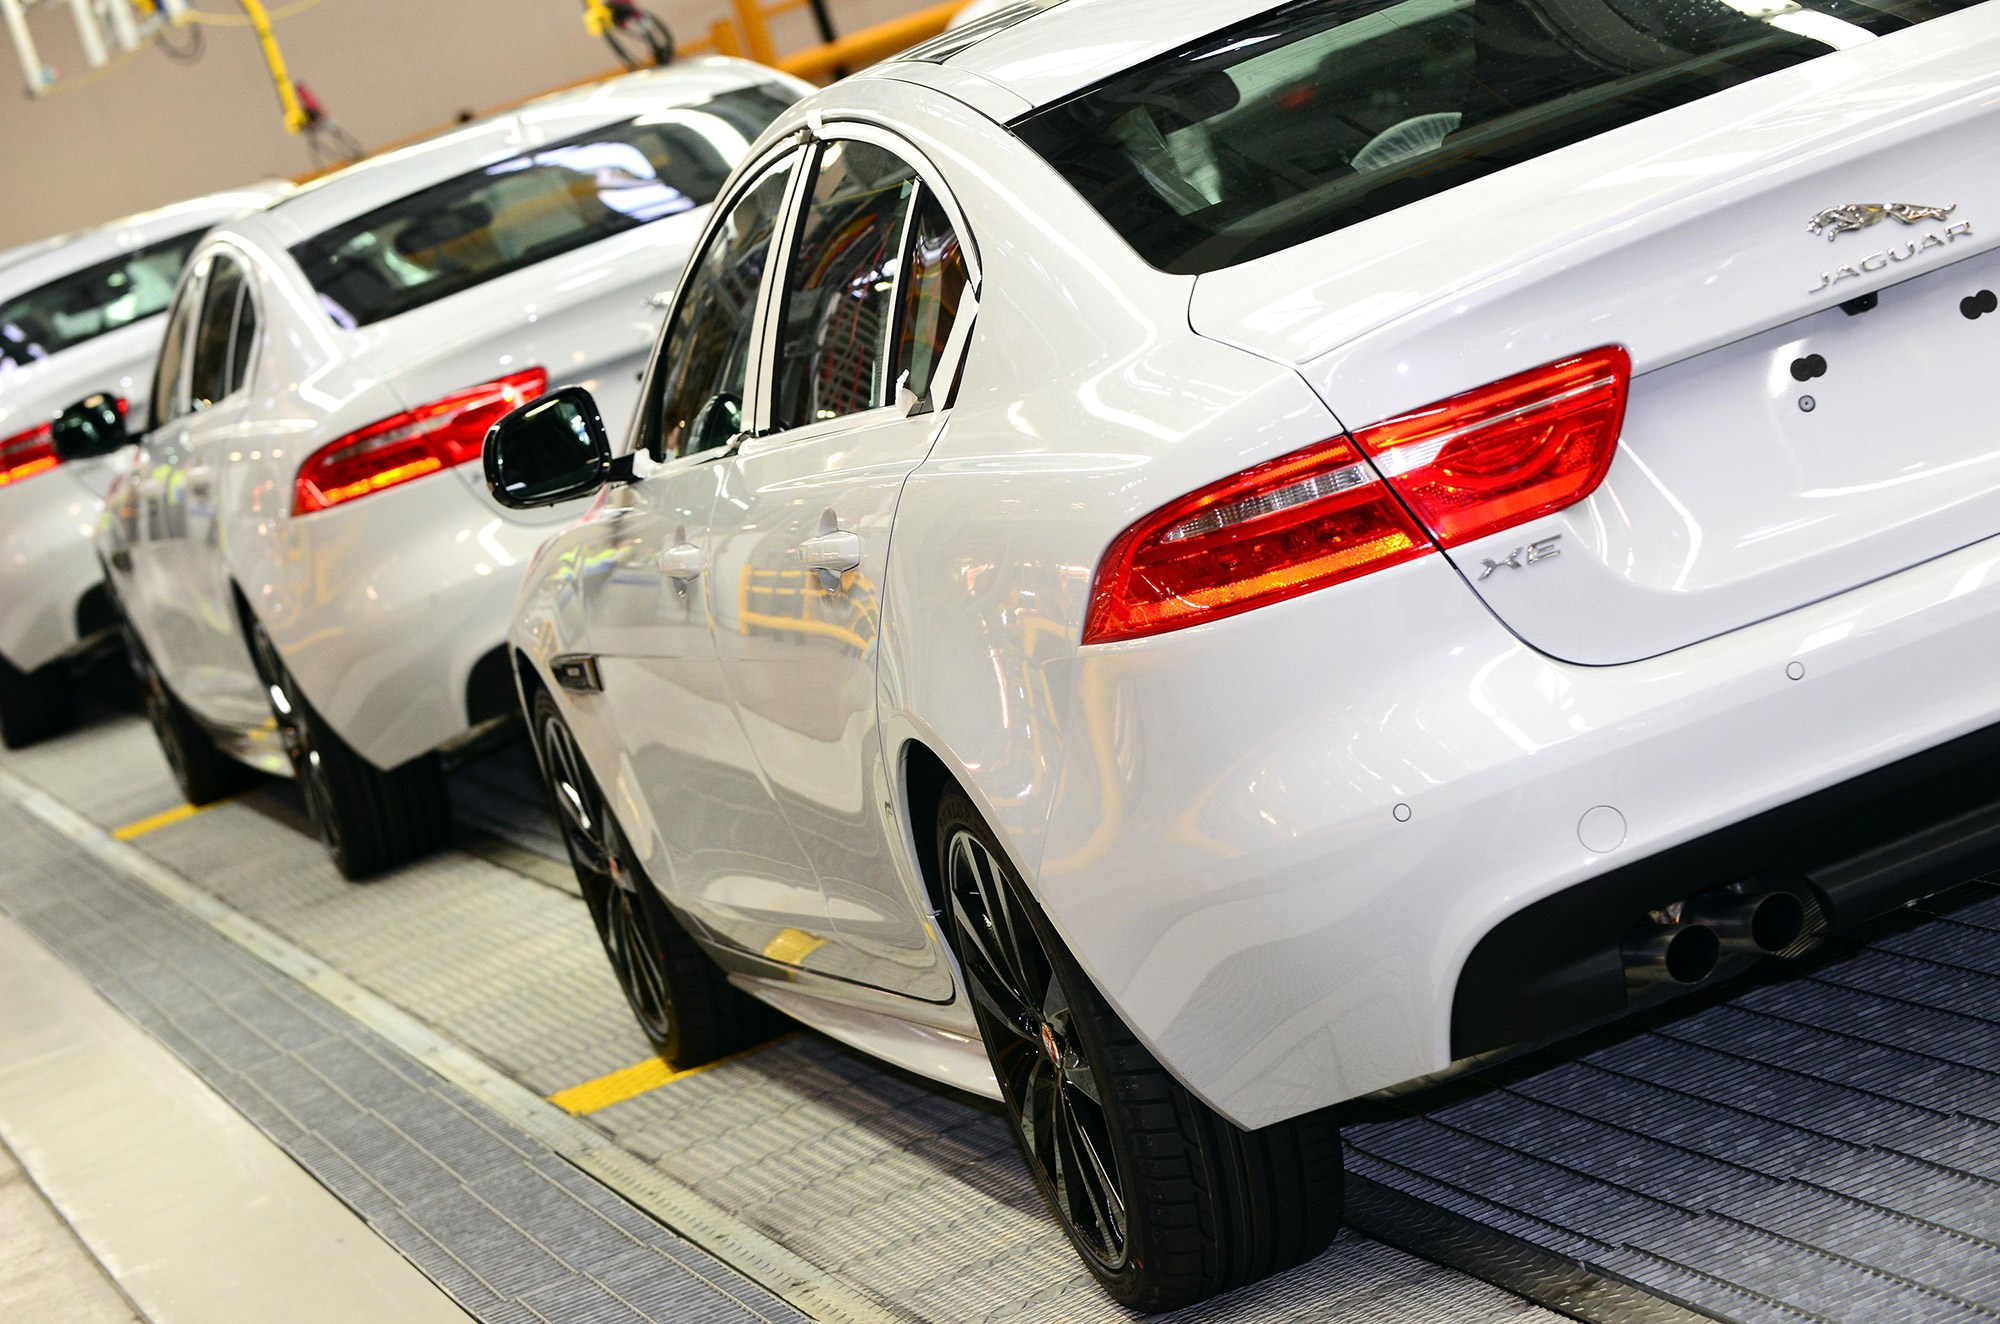 Jaguar XE production starts: it's the first Jag to be built at Land